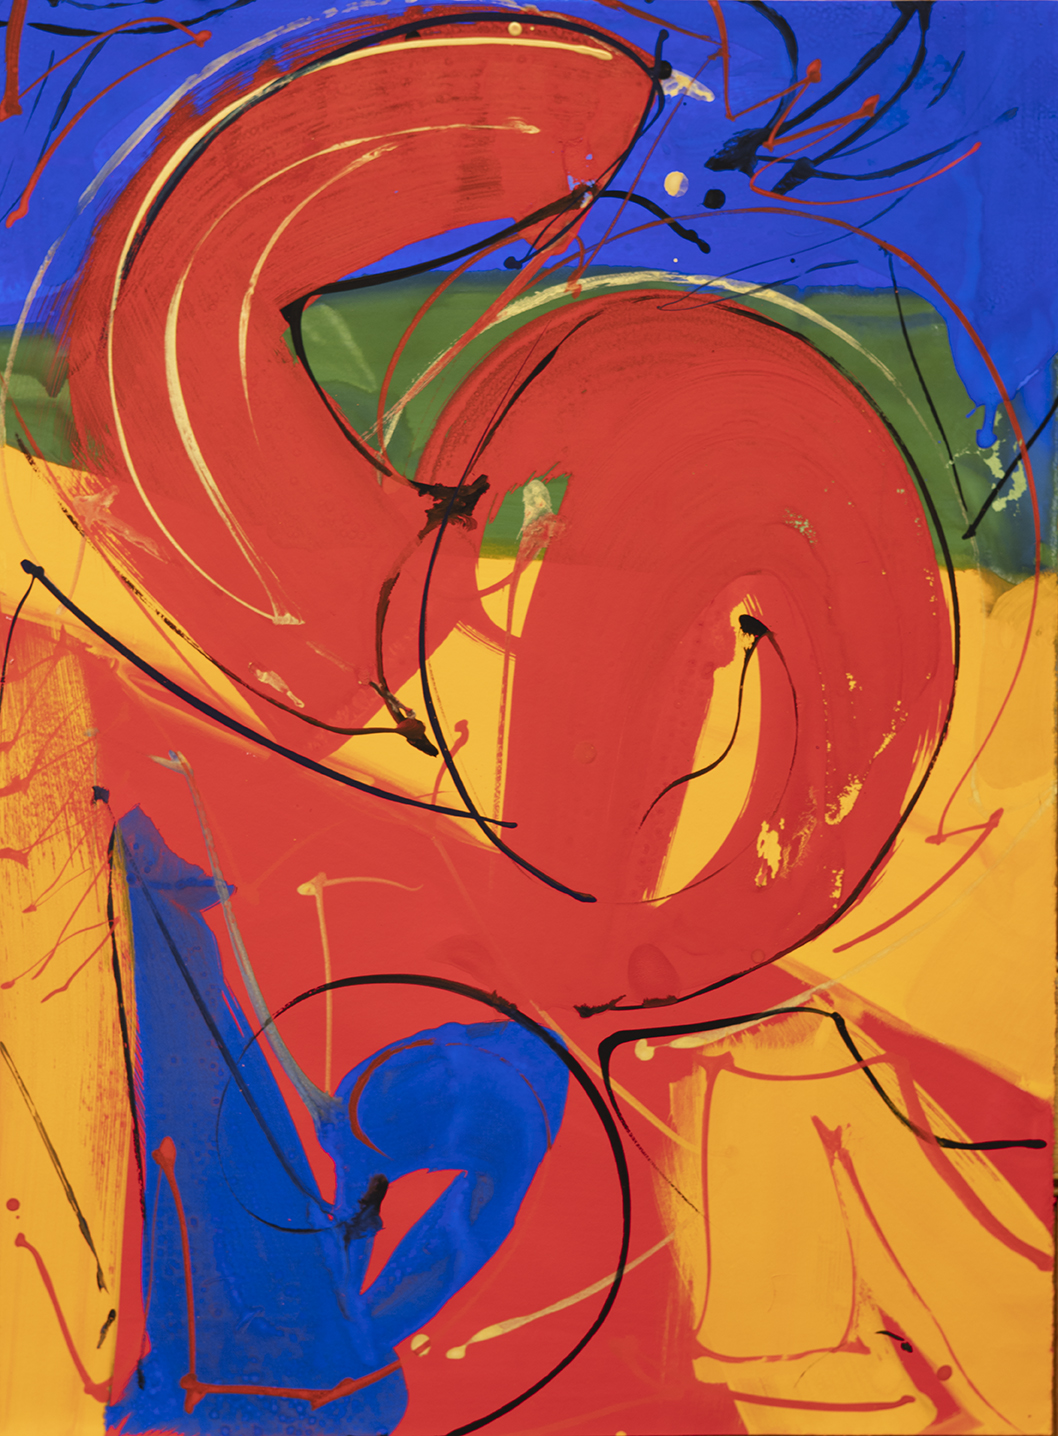 Gouache on paper, 22x30, Caligraphic and gestural brush work in reds, yellows. blues and green